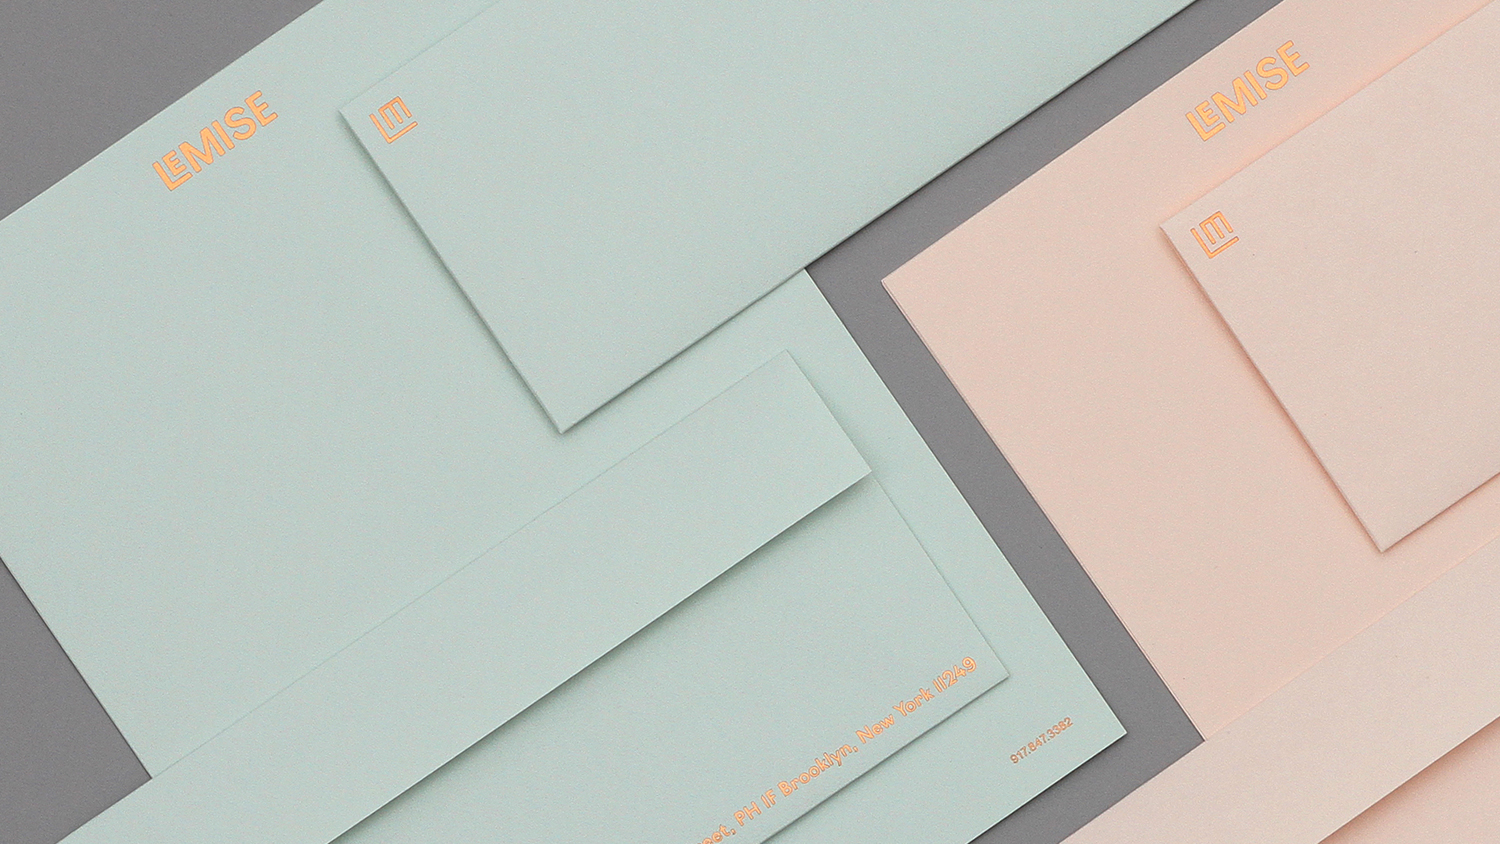 Brand identity and pastel coloured paper and coper block foil stationery for Brooklyn based art and design advisory business LeMise by DIA